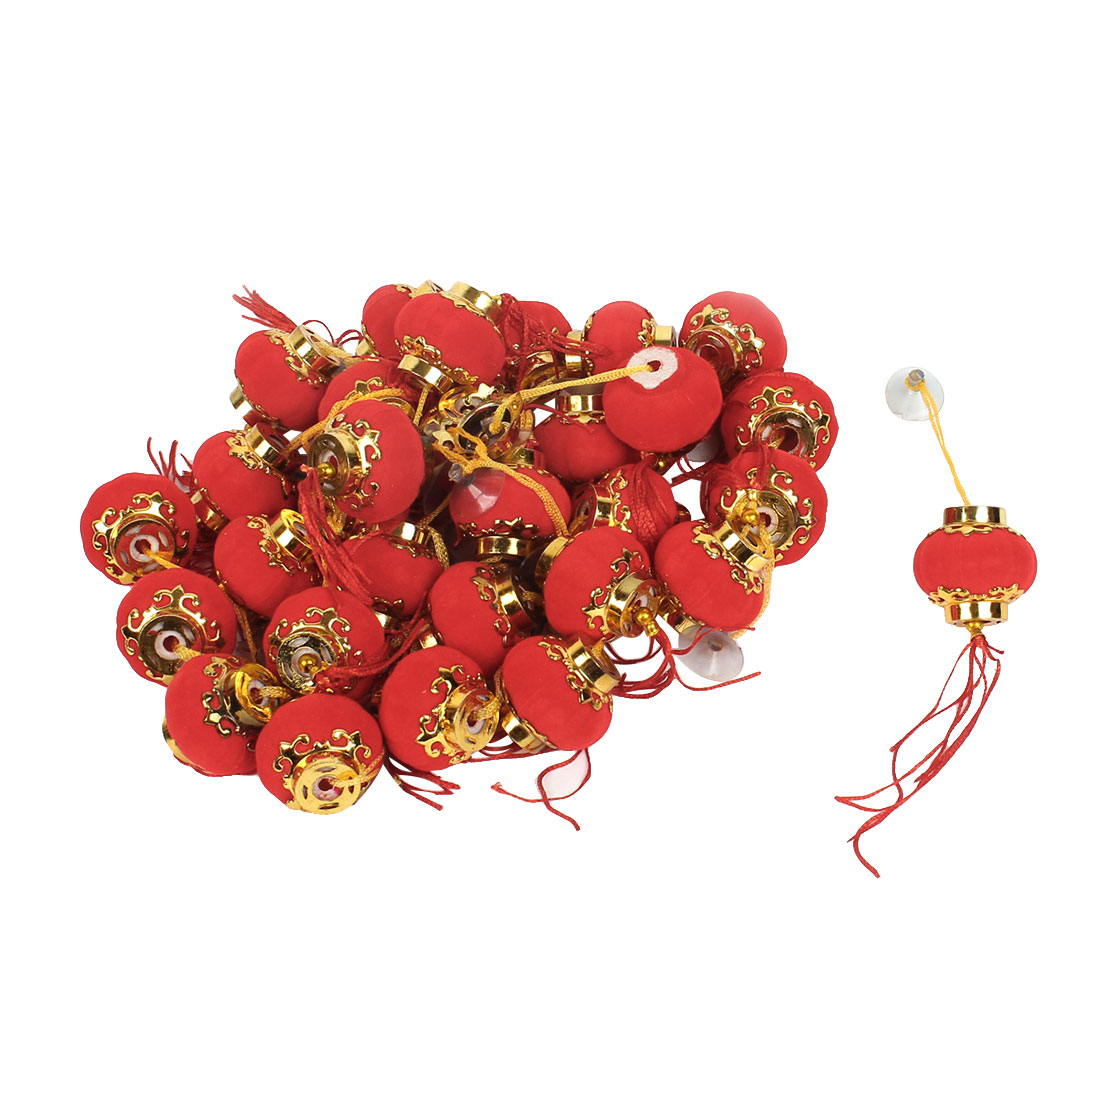 Festival Adron Suction Cup Hanging Chinese Red Lantern Decoration x 30